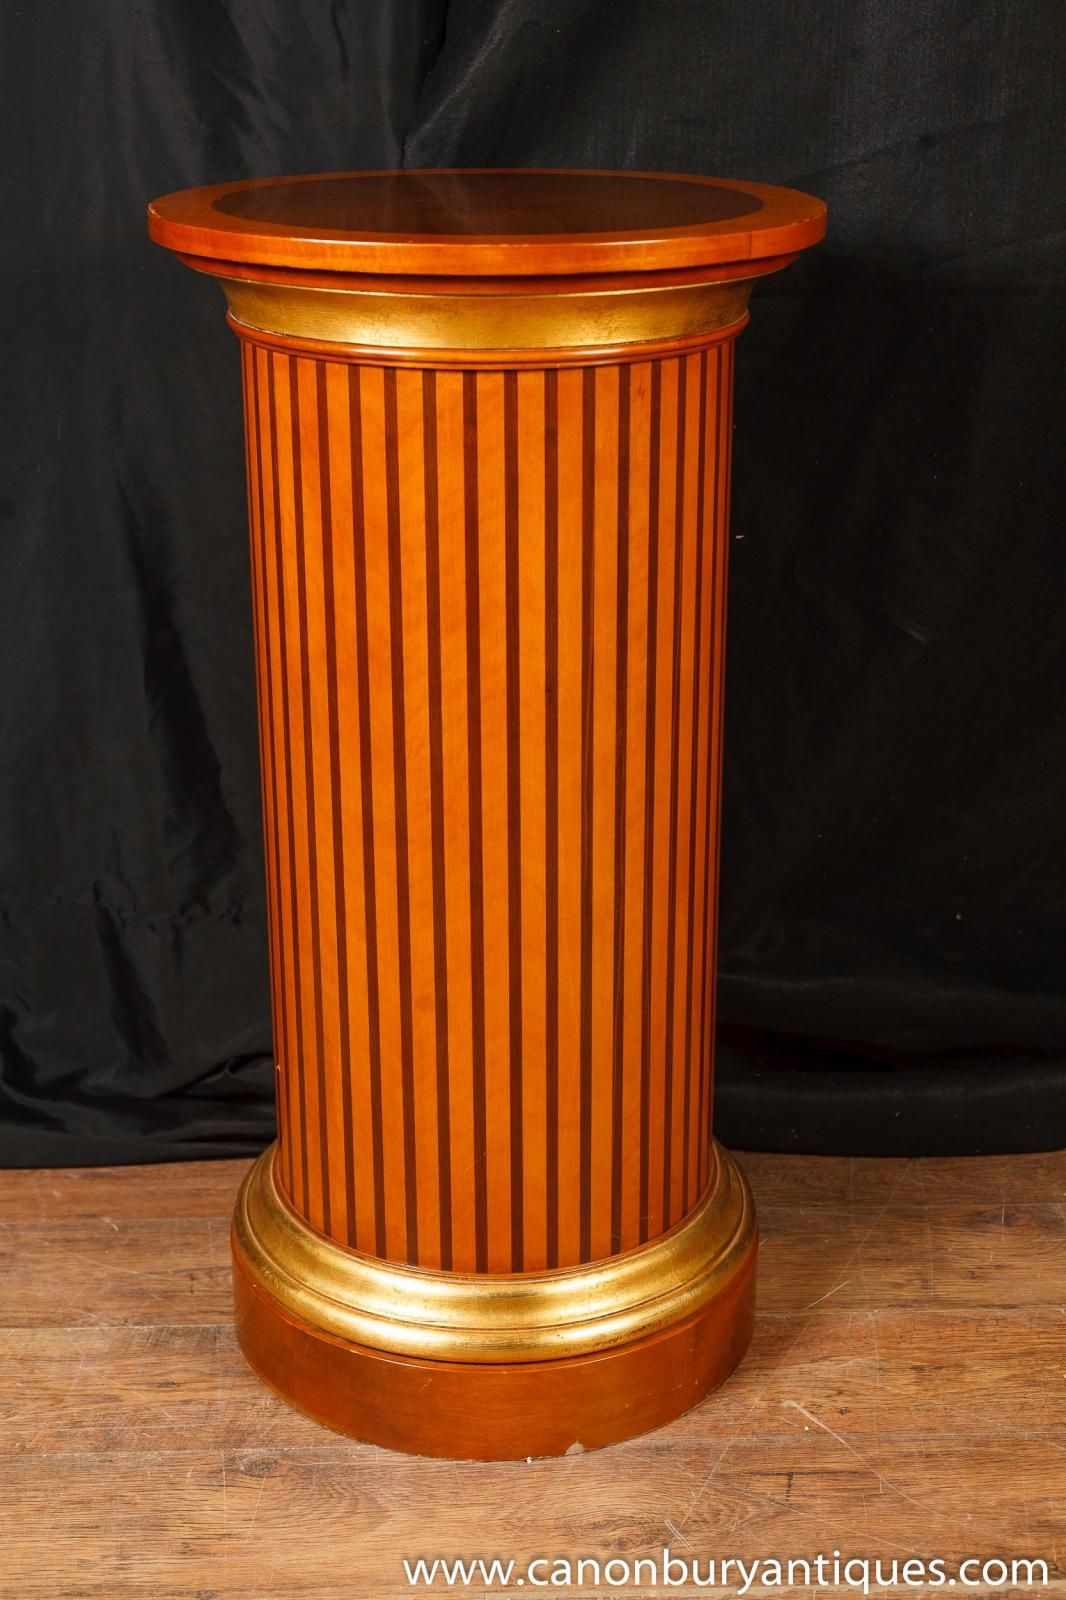 Photo of Regency Pedestal Table Column Support Classical Antiquity Furniture - Photo Of Regency Pedestal Table Column Support Classical Antiquity